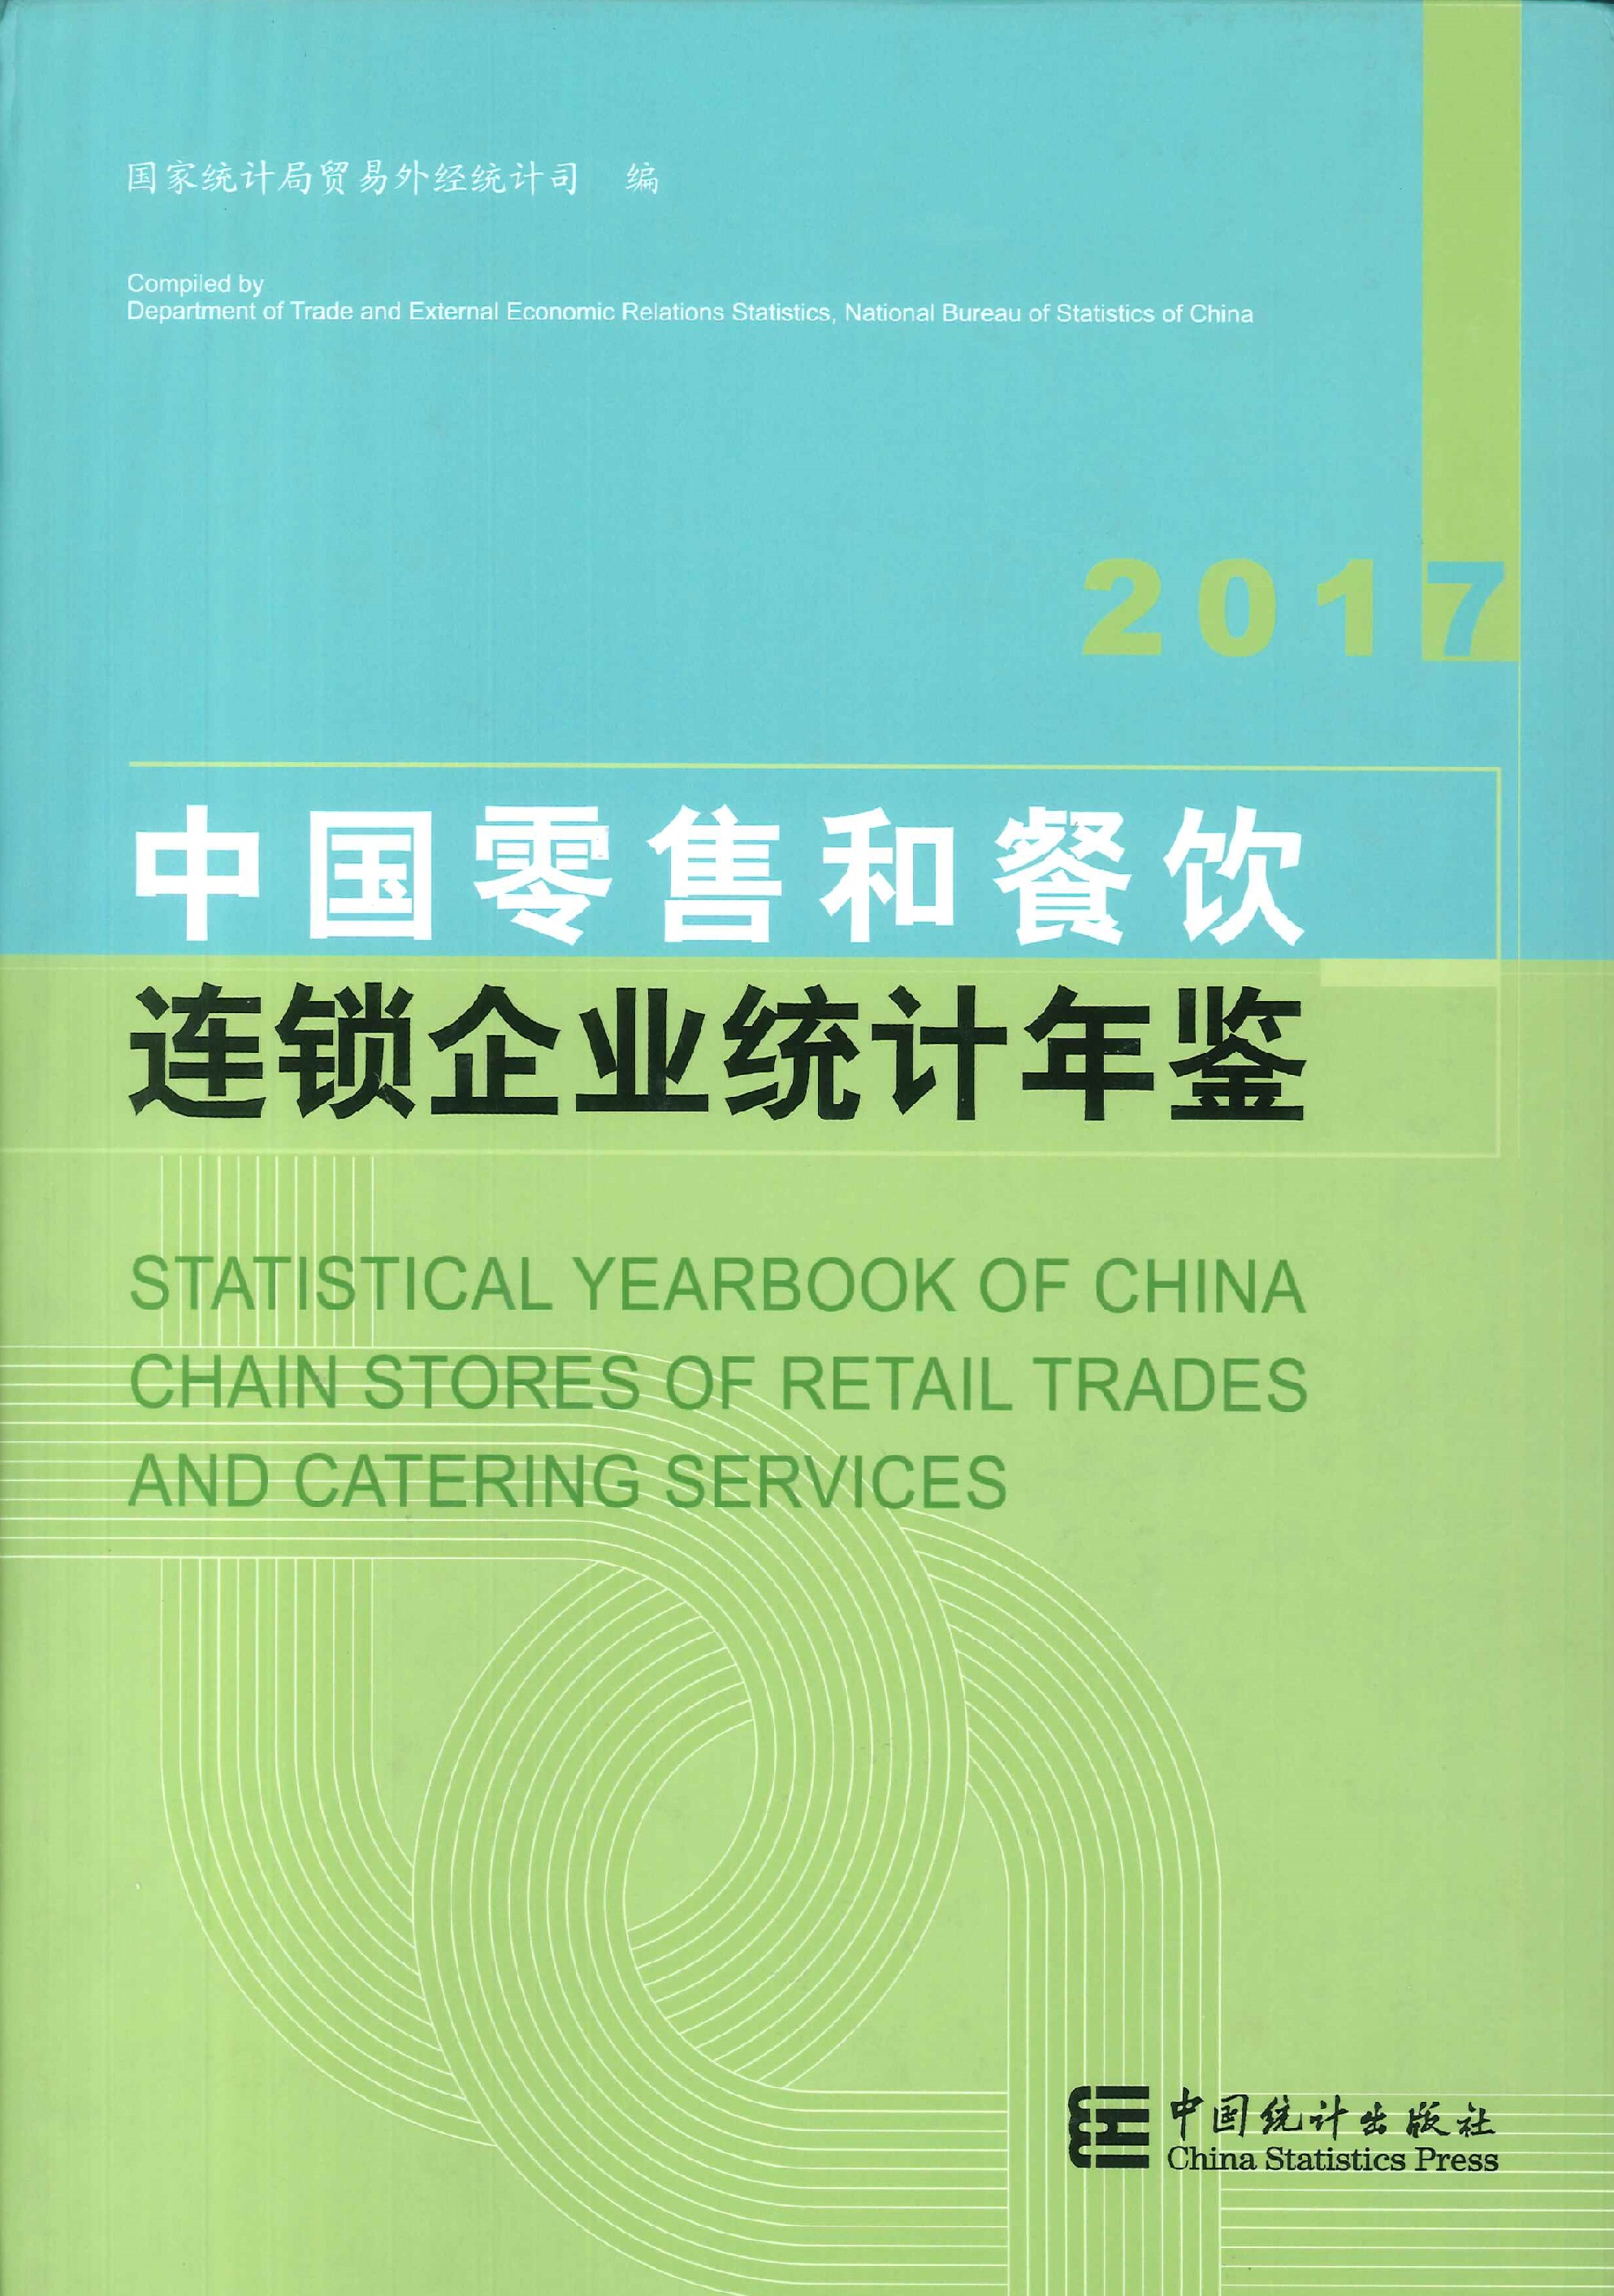 中国零售和餐饮连锁企业统计年鉴=Statistical yearbook of China chain stores of retail trades and catering services